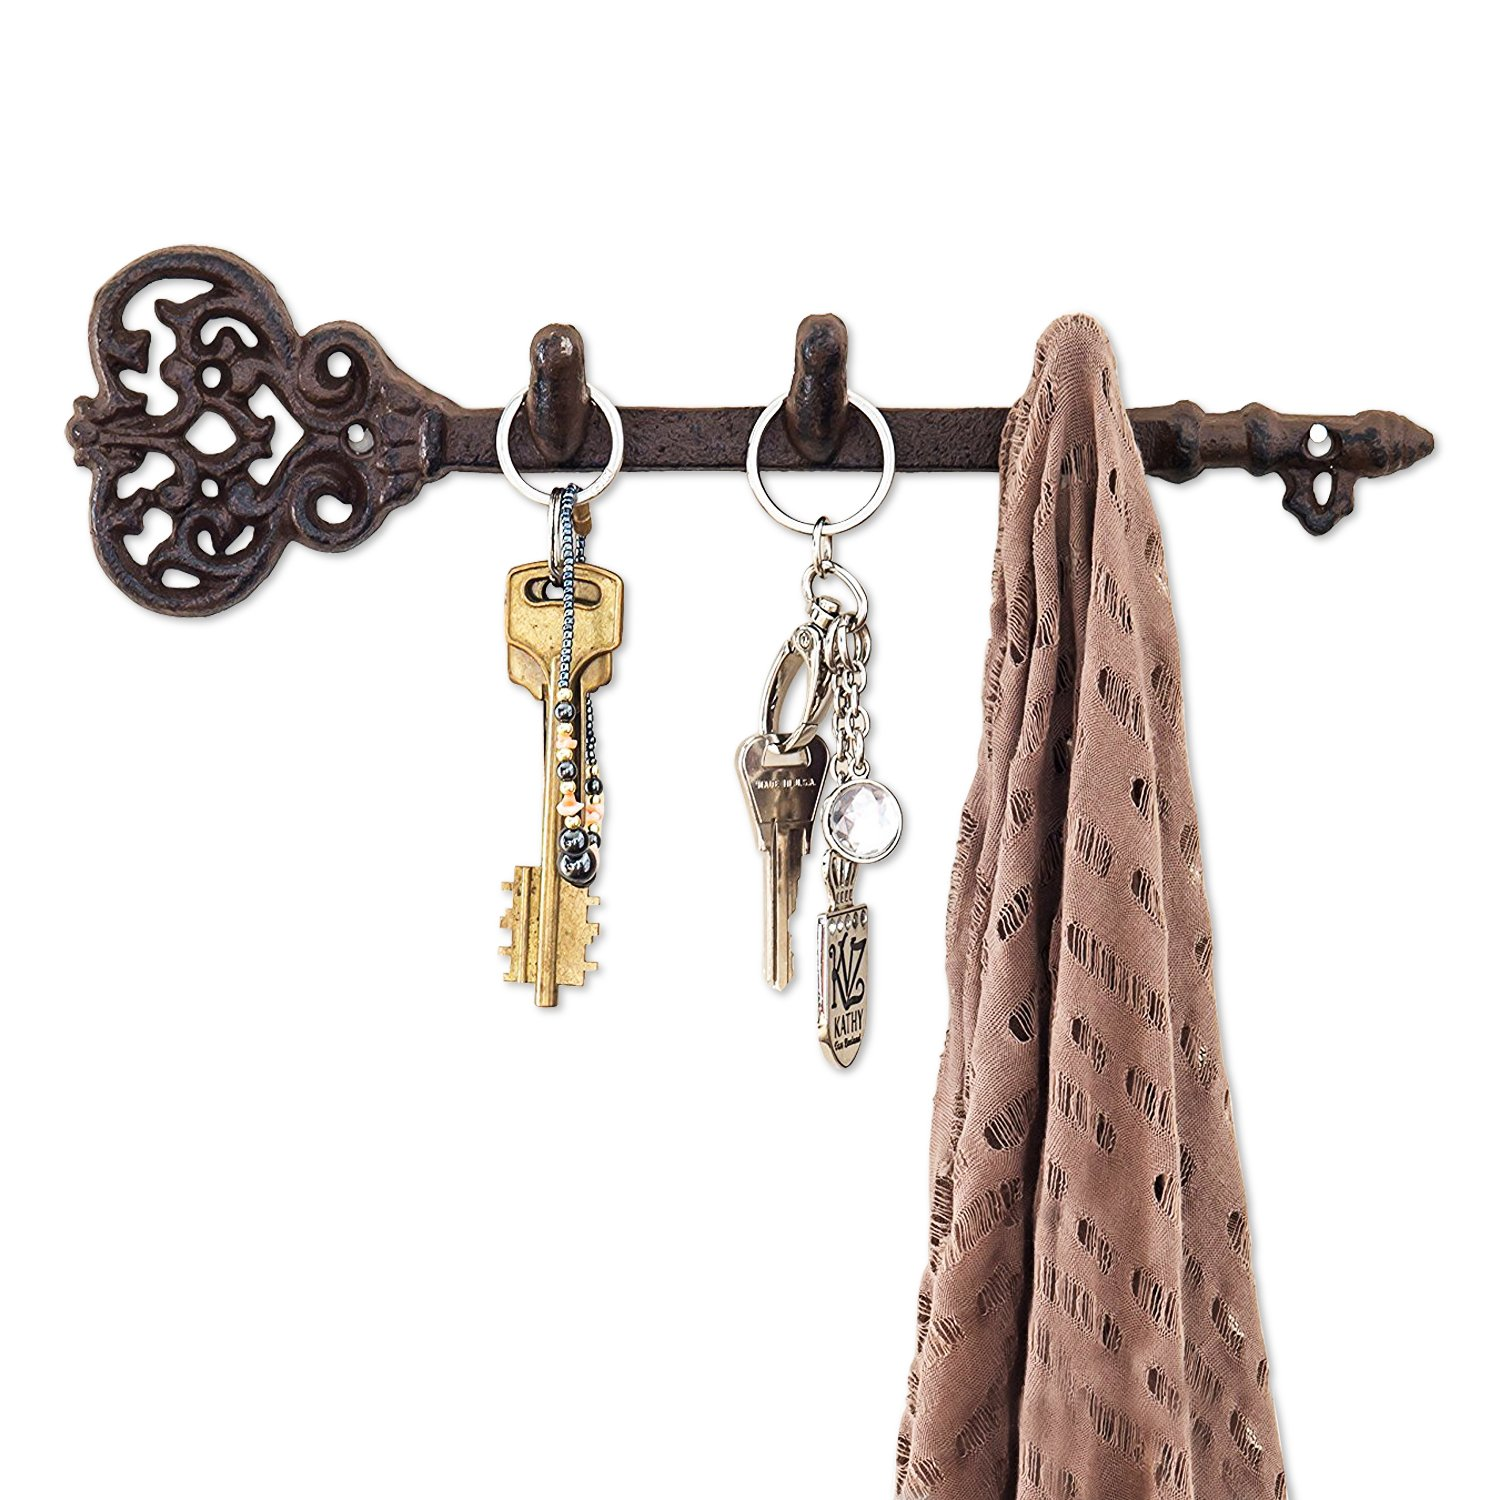 Decorative Wall Mounted Key Holder - Vintage Key With 3 Hooks - Wall Mounted - Rustic Cast Iron - 11.6 x 3'- With Screws And Anchors By Comfify FBA_CA-1504-01-BR